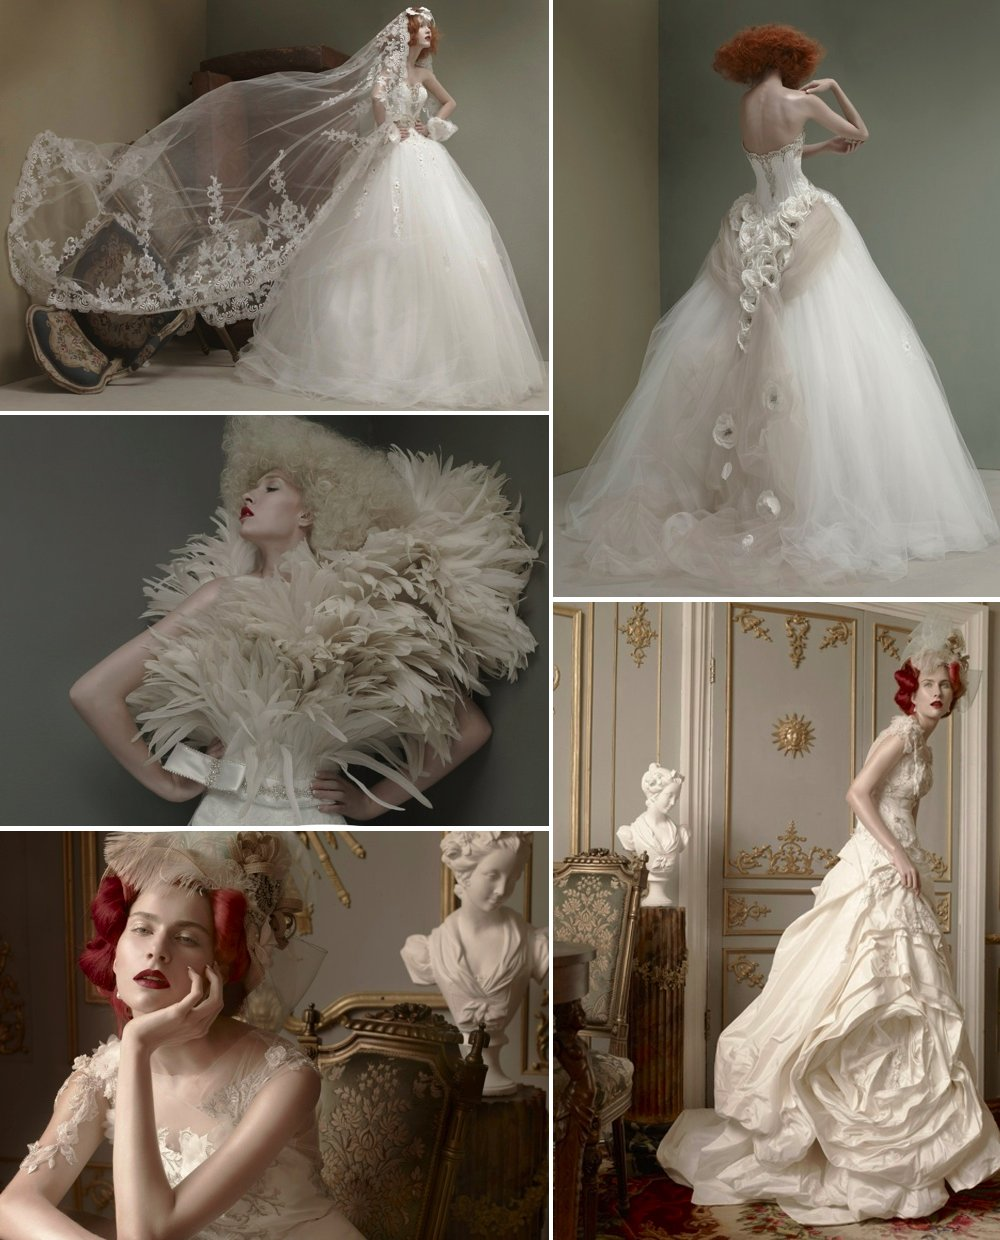 St-pucchi-couture-wedding-dresses-2012-bridal-gown.full